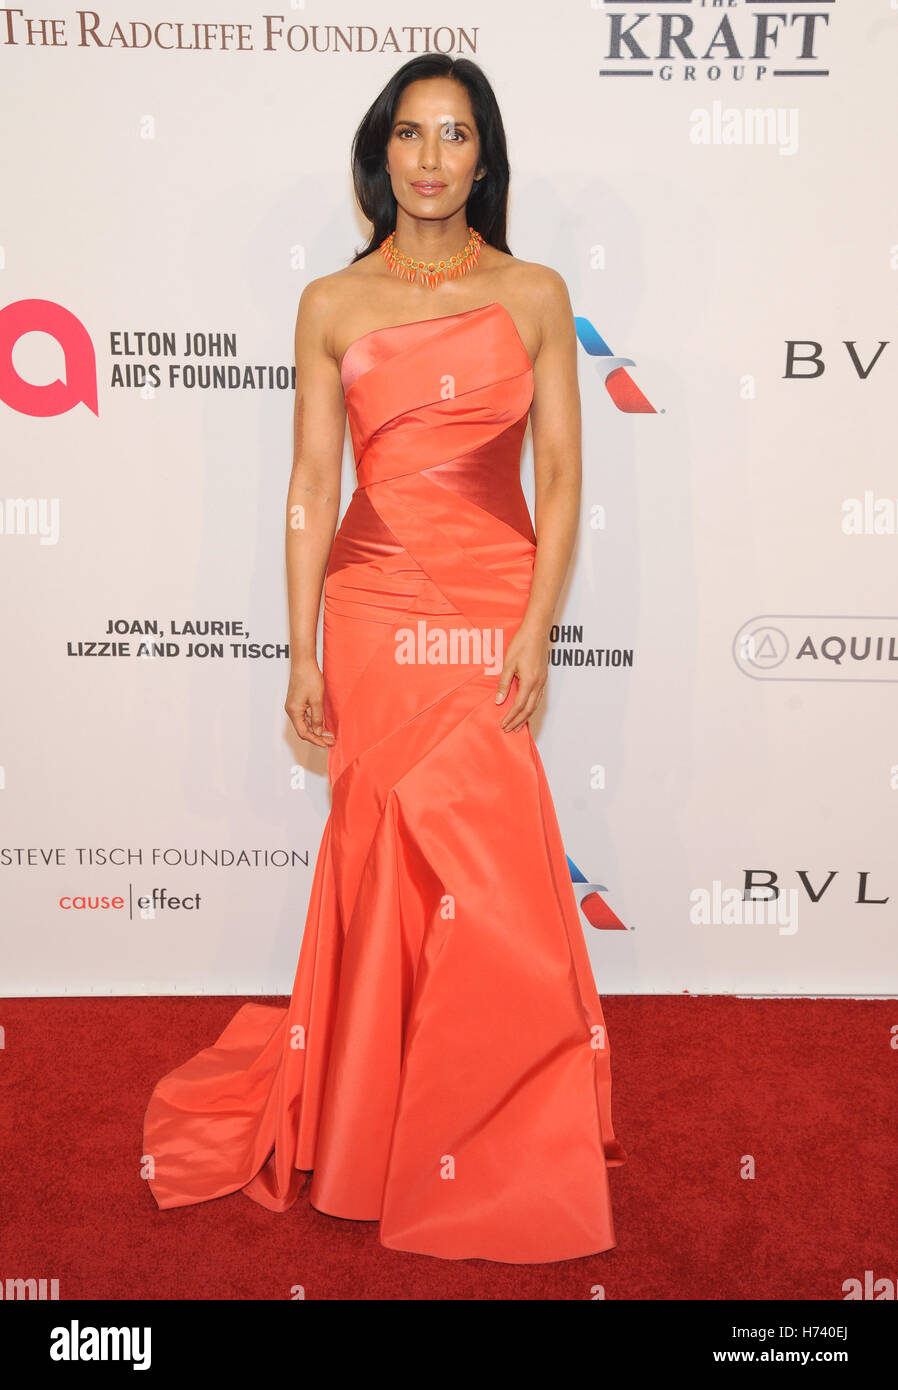 Nueva York, NY, EUA. 02Nd Nov, 2016. Padma Lakshmi atiende 15th Annual Elton John AIDS Foundation una visión Imagen De Stock